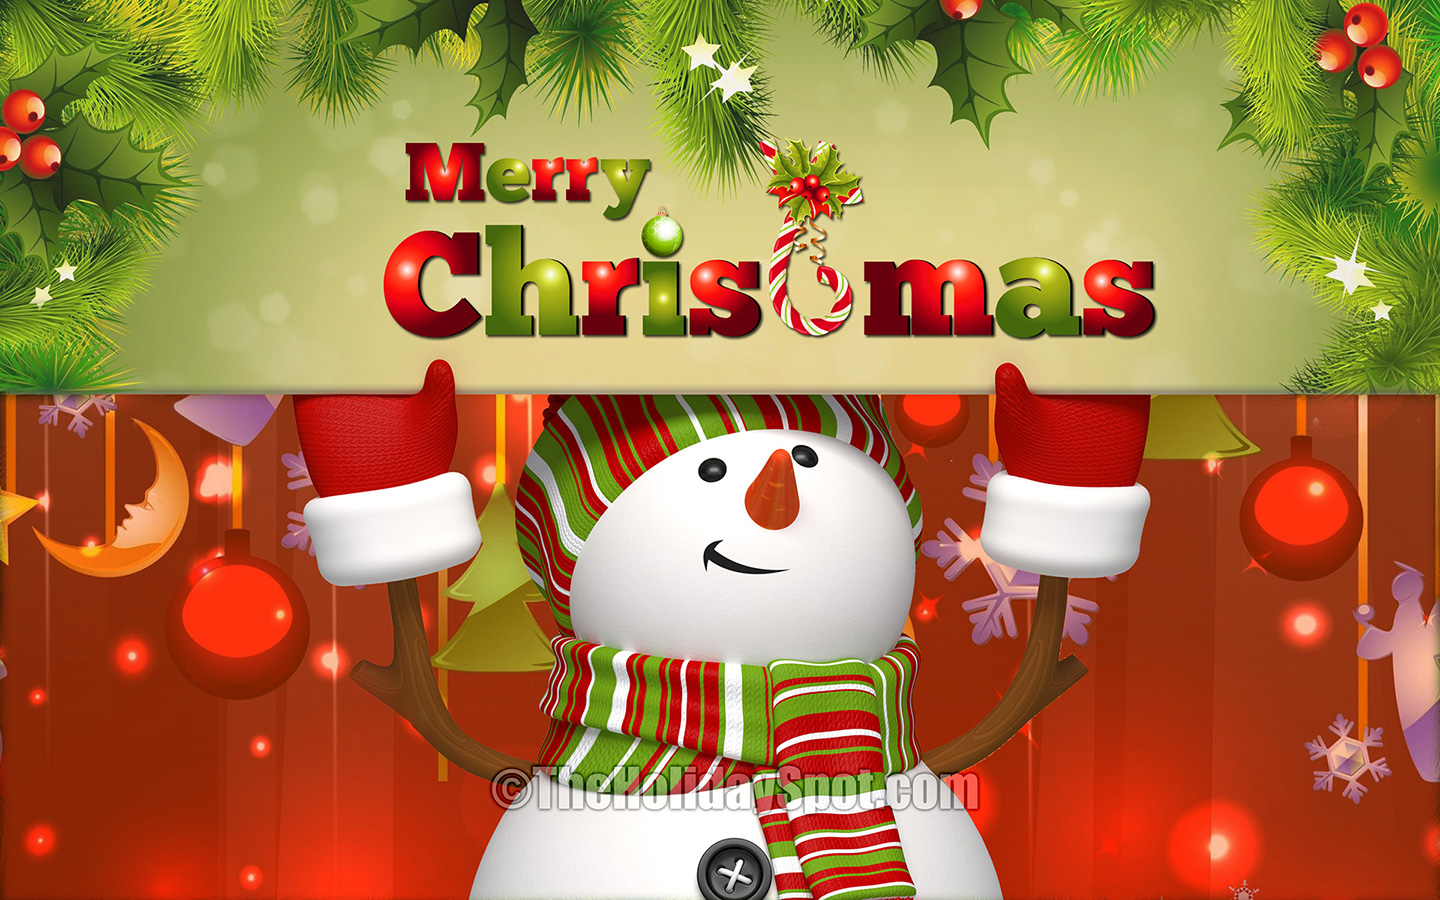 Merry Christmas Tree Free Download Wallpaper